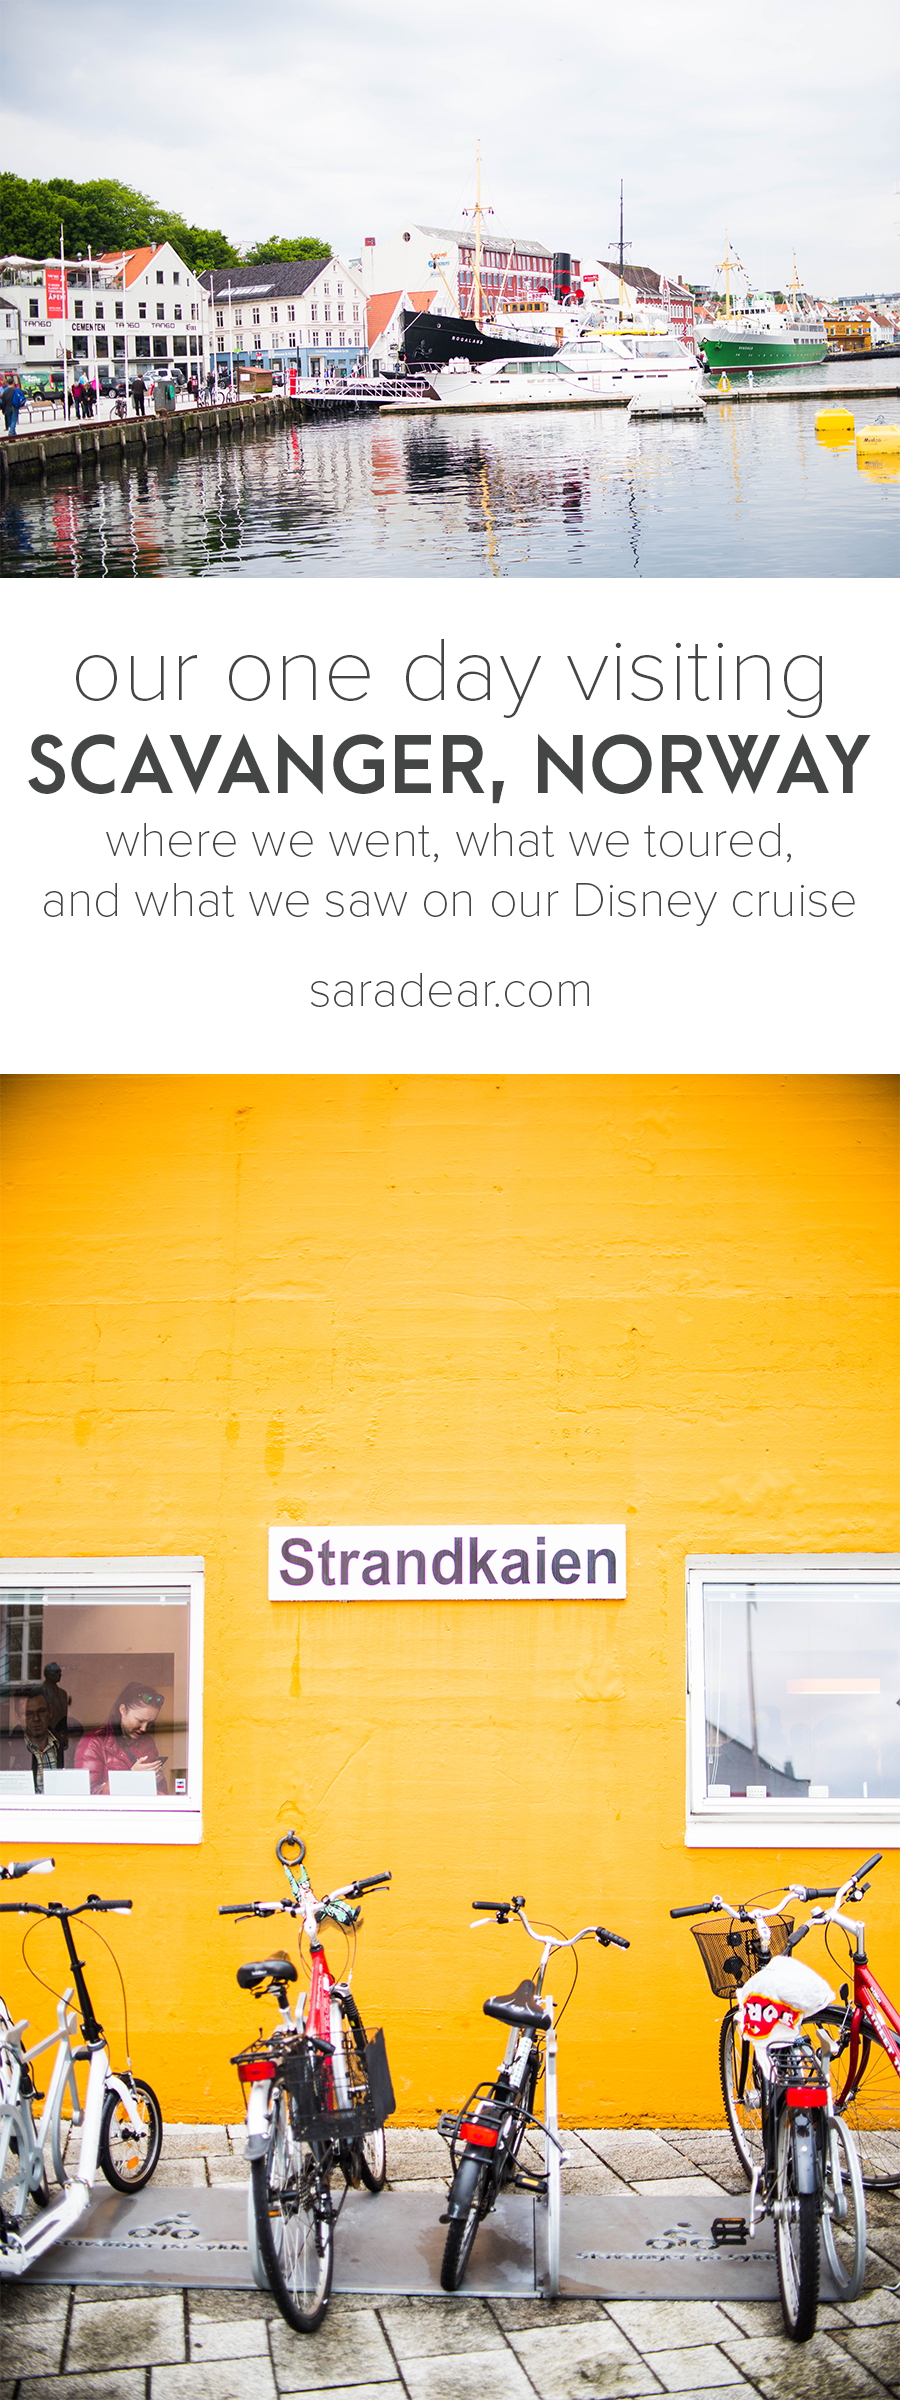 One day family trip to Scavanger Norway on Disney Magic Cruiseline.png